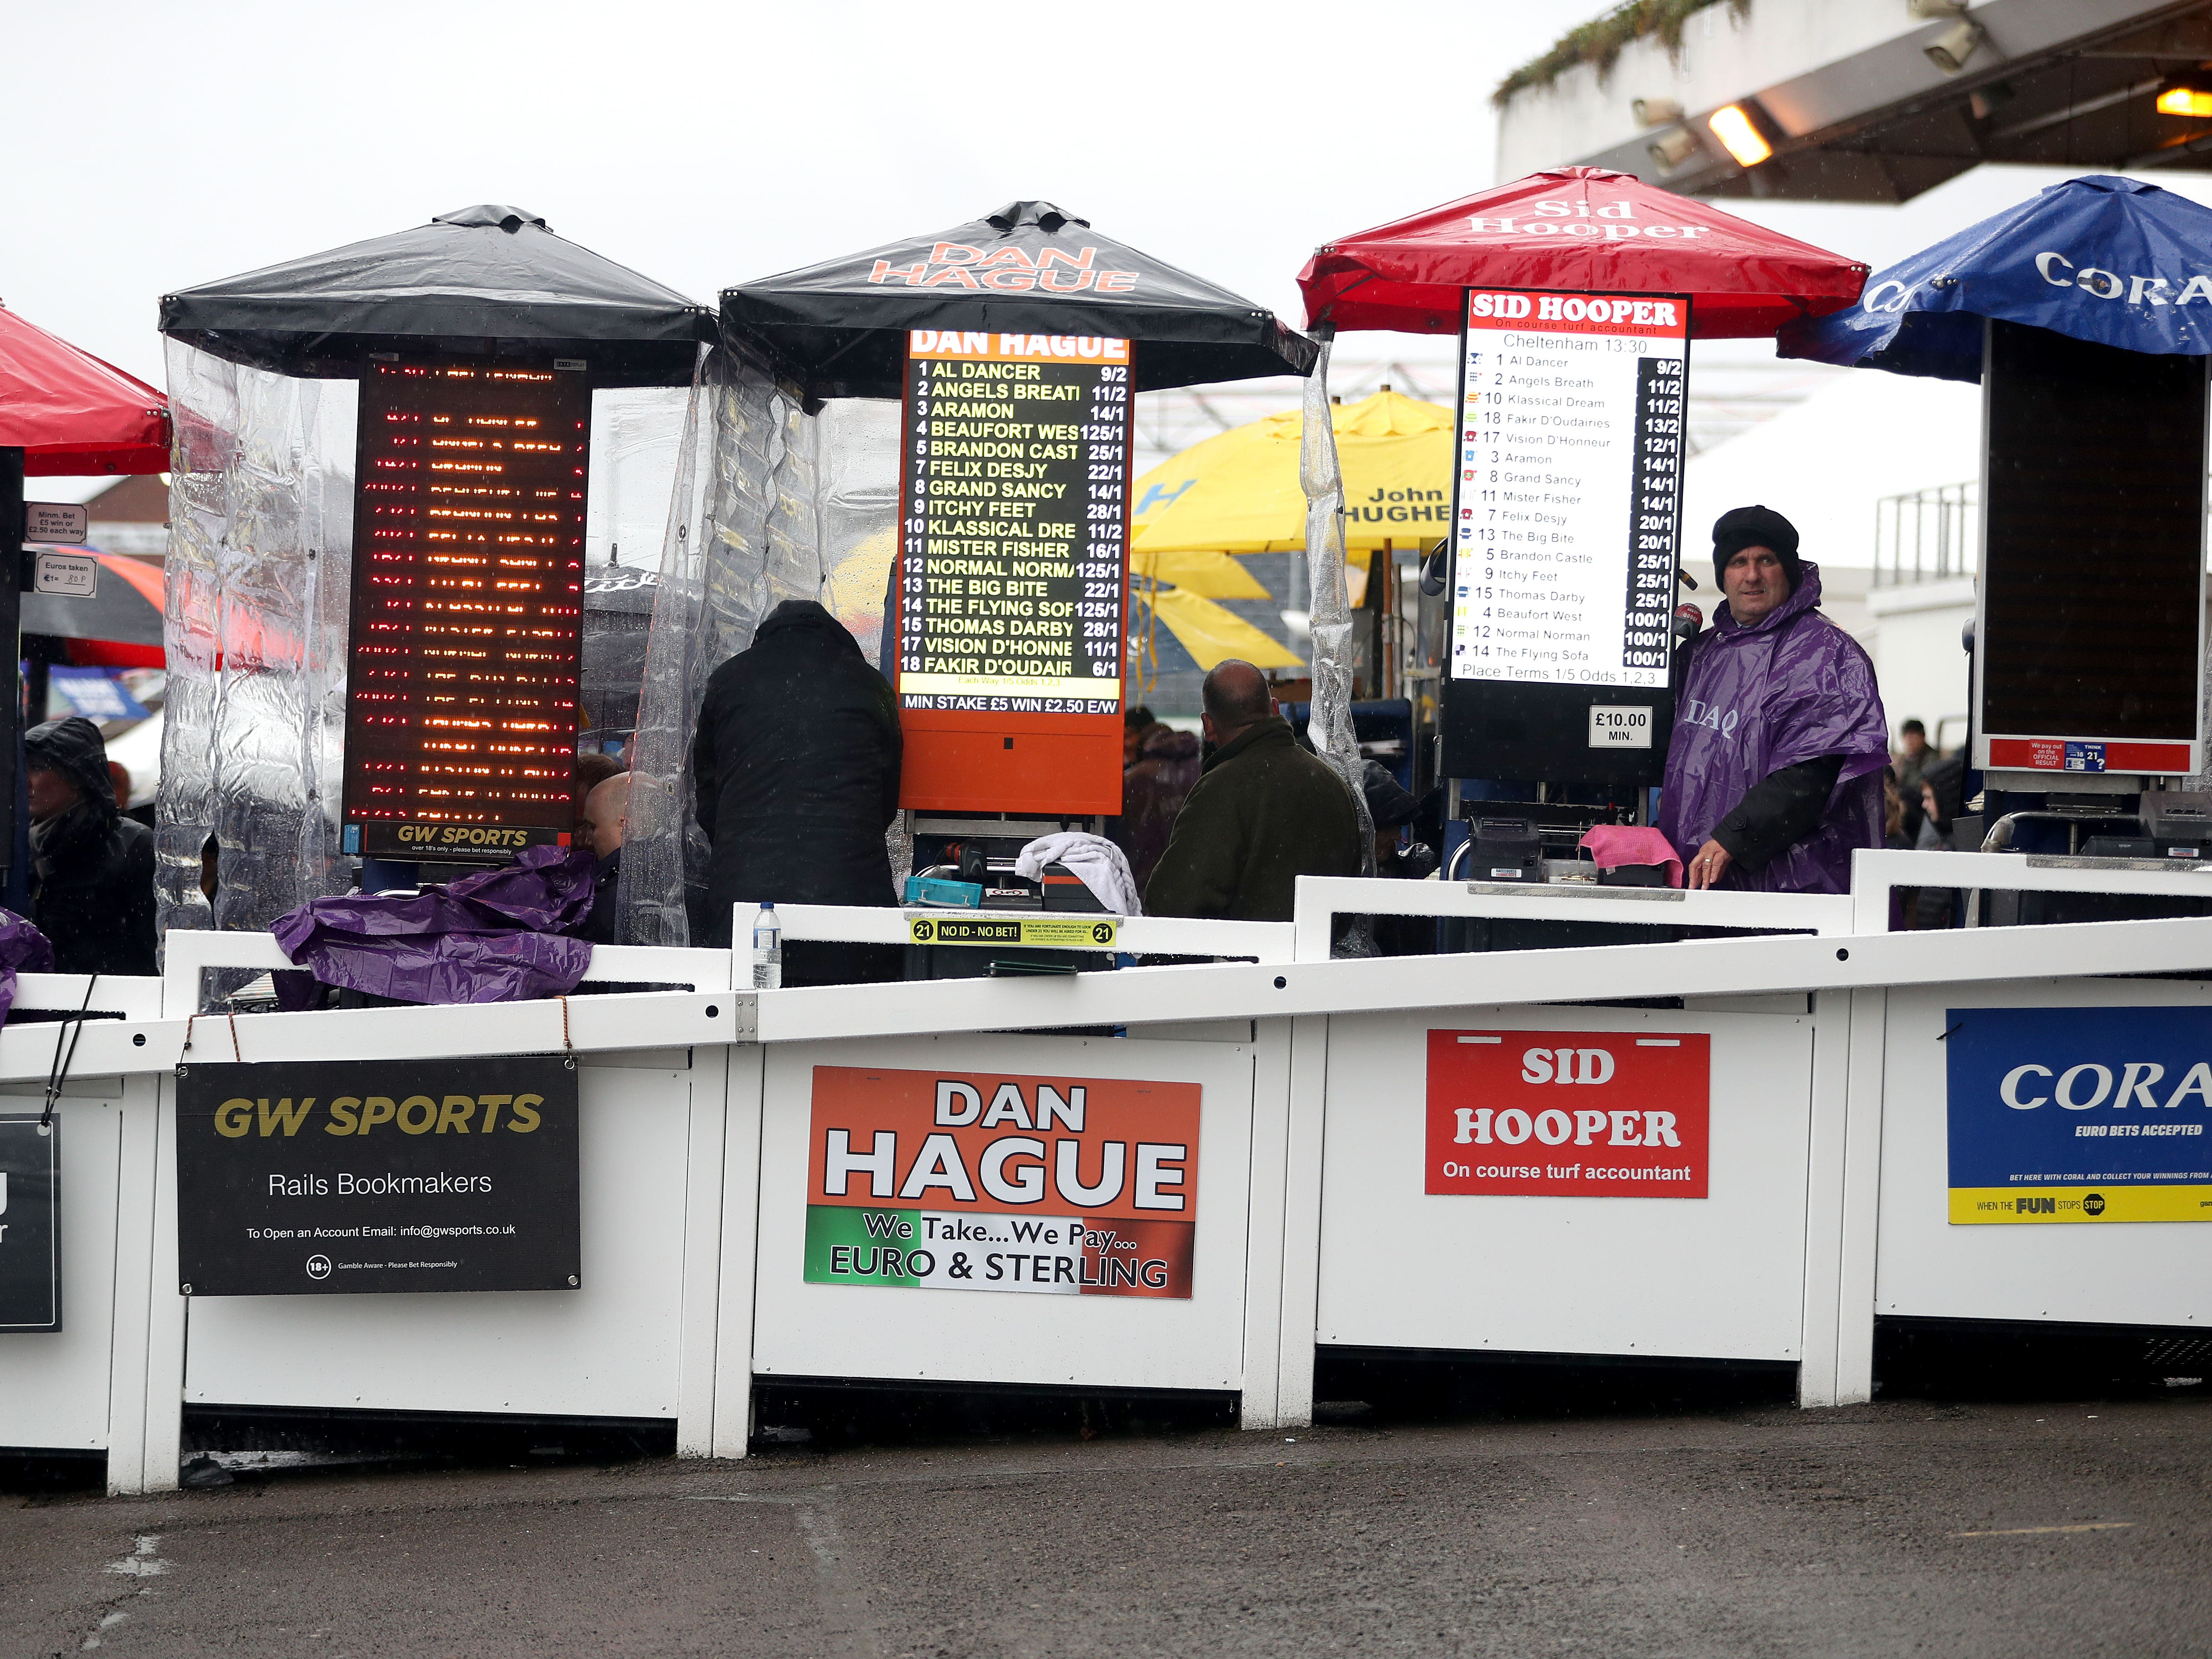 Coral and Ladbrokes betting ring pitches will no longer be seen on course (Simon Cooper/PA)